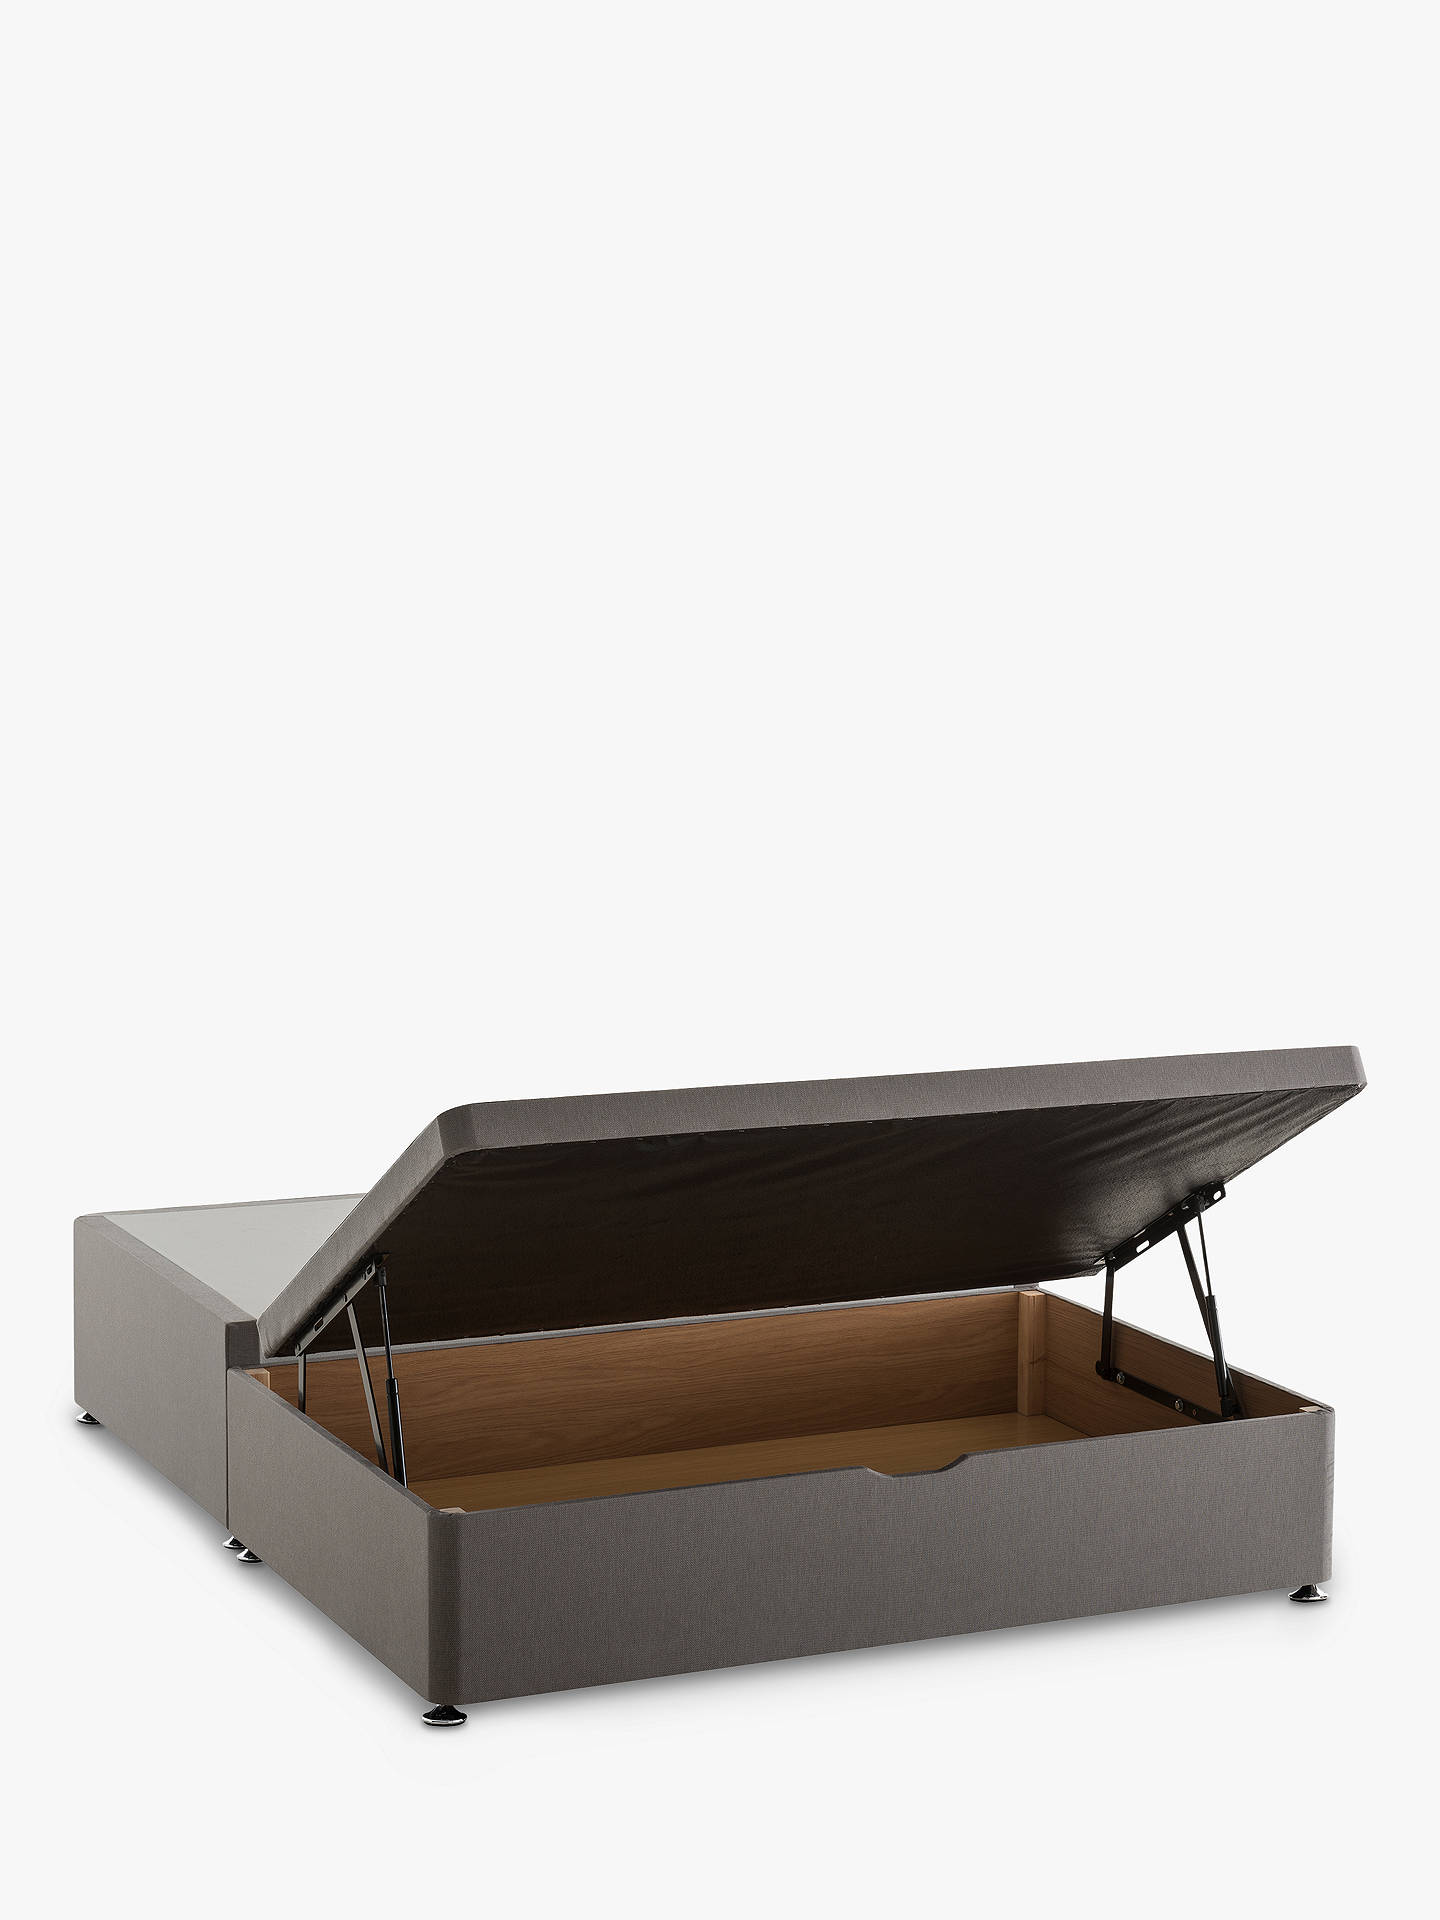 99aeb2ee7440 Buy Silentnight End Divan Ottoman Storage Bed, Double Online at  johnlewis.com ...